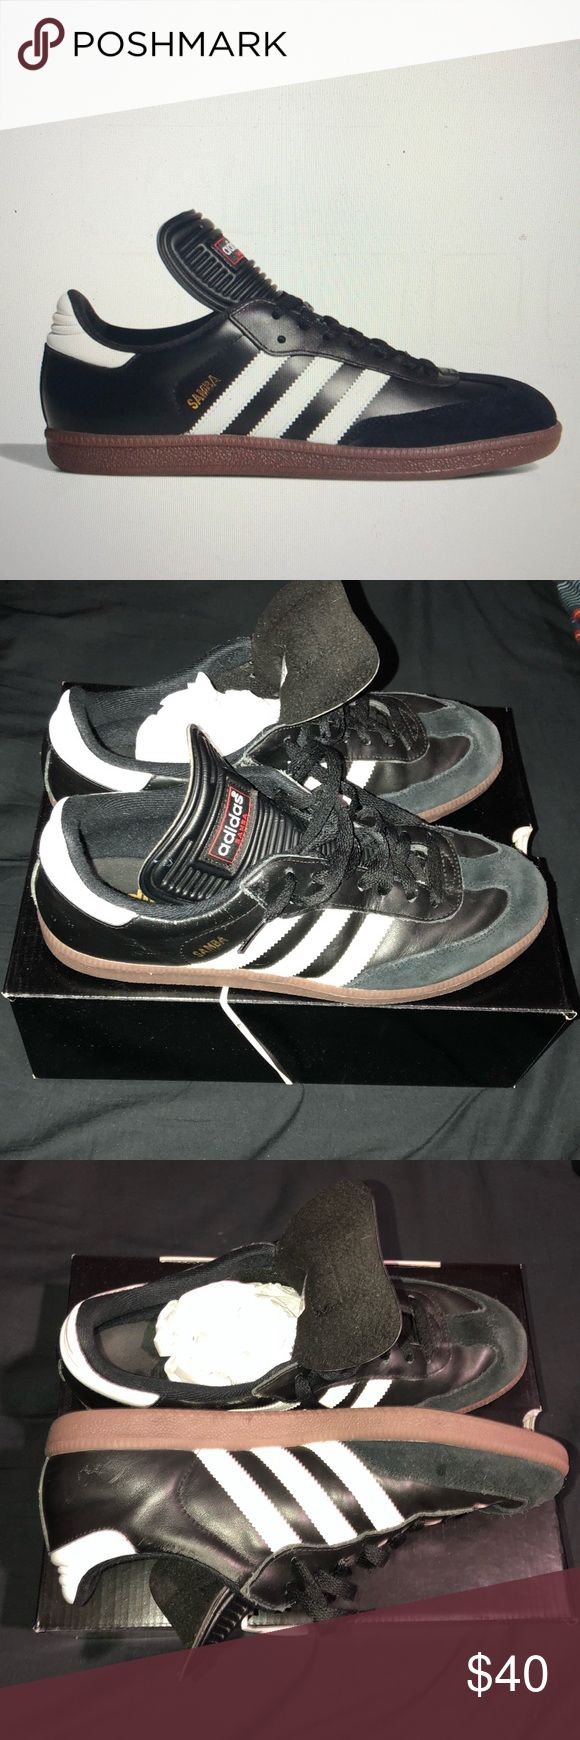 Adidas Samba Classic - Soccer GUC - No box  Normal wear on the toe box and some scuffing in right foot. (See image) adidas Shoes Athletic Shoes